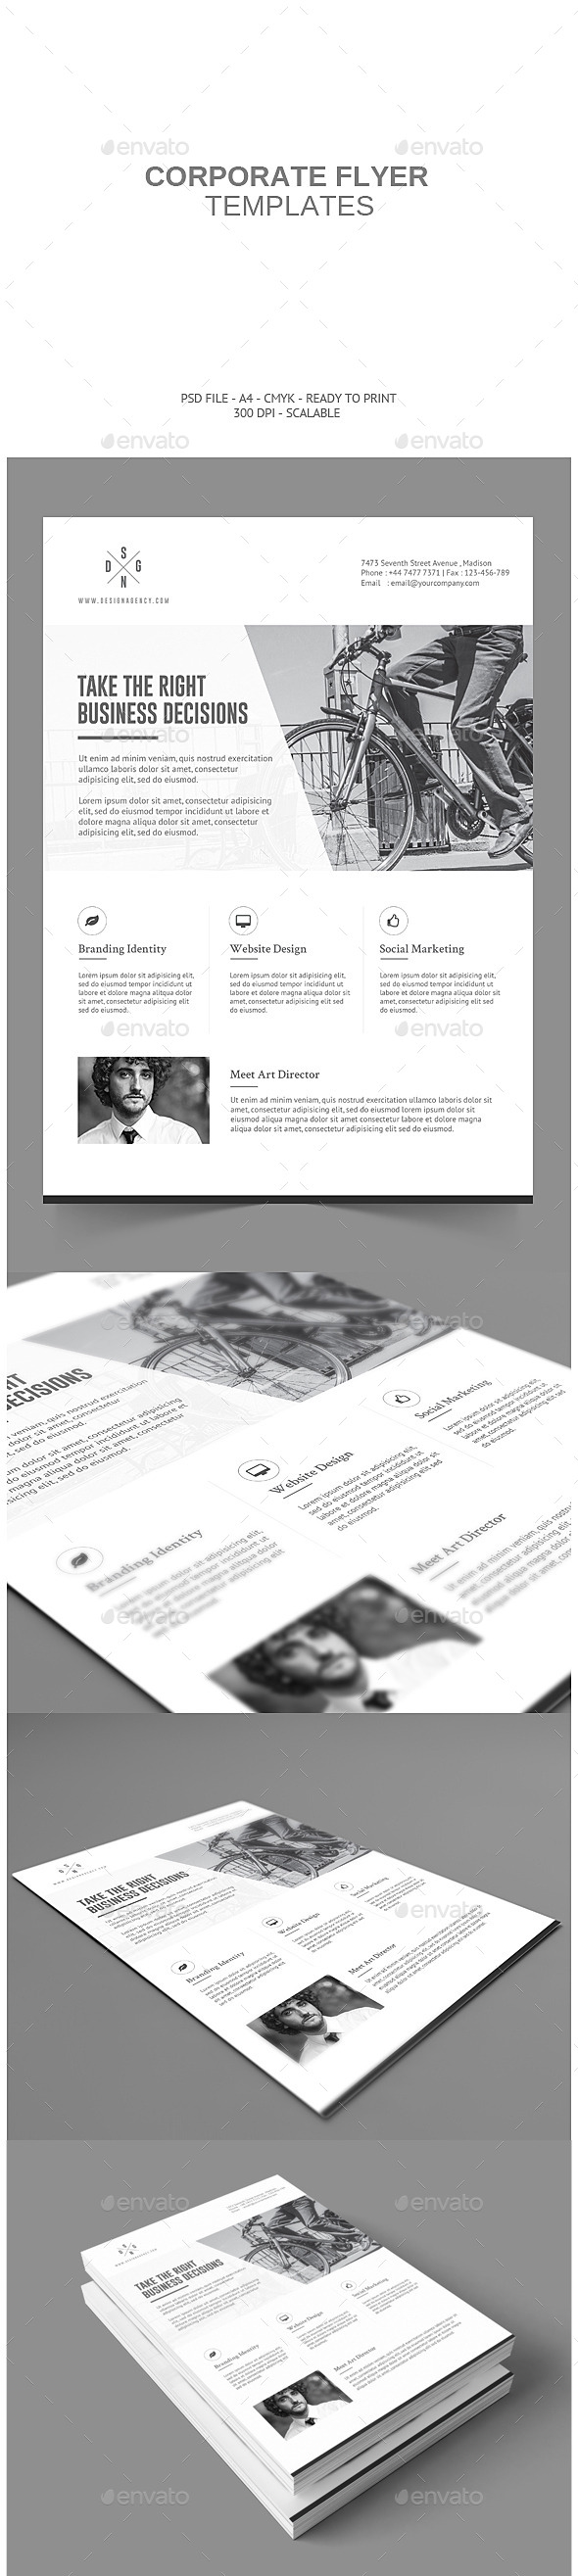 Minimalistic Corporate Flyer  - Corporate Flyers